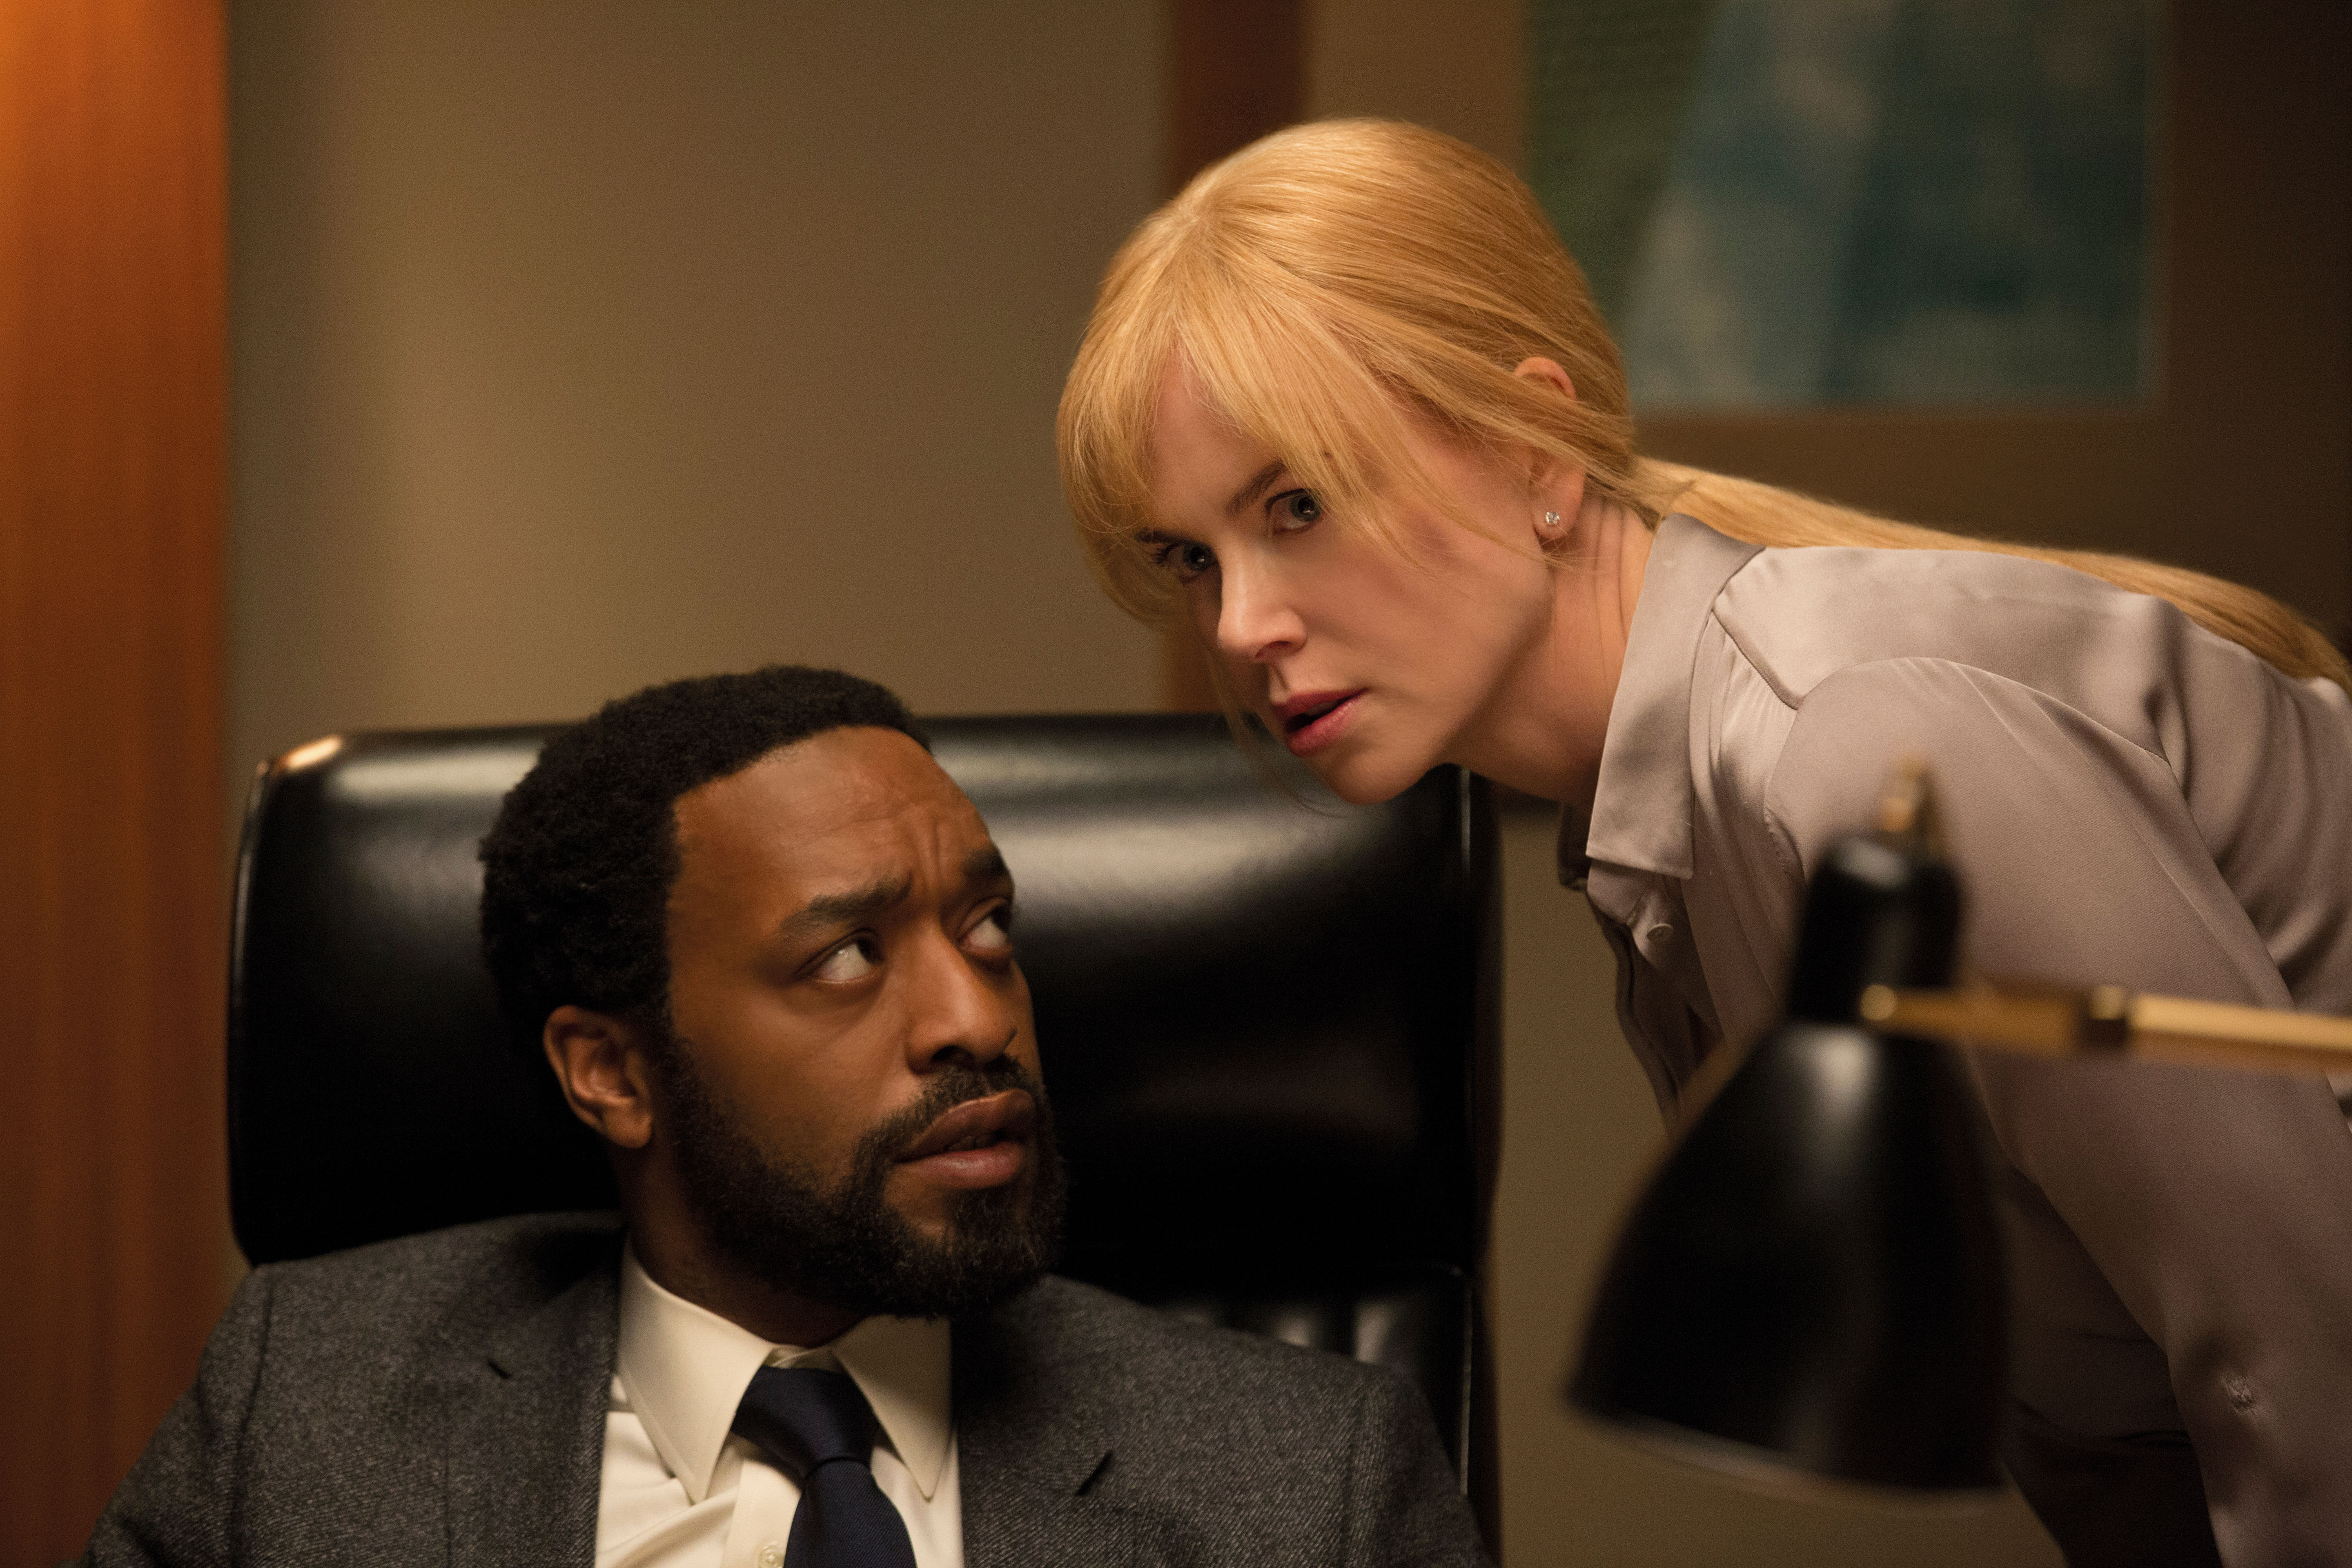 (L-R) CHIWETEL EJIOFOR and NICOLE KIDMAN star in SECRET IN THEIR EYES.